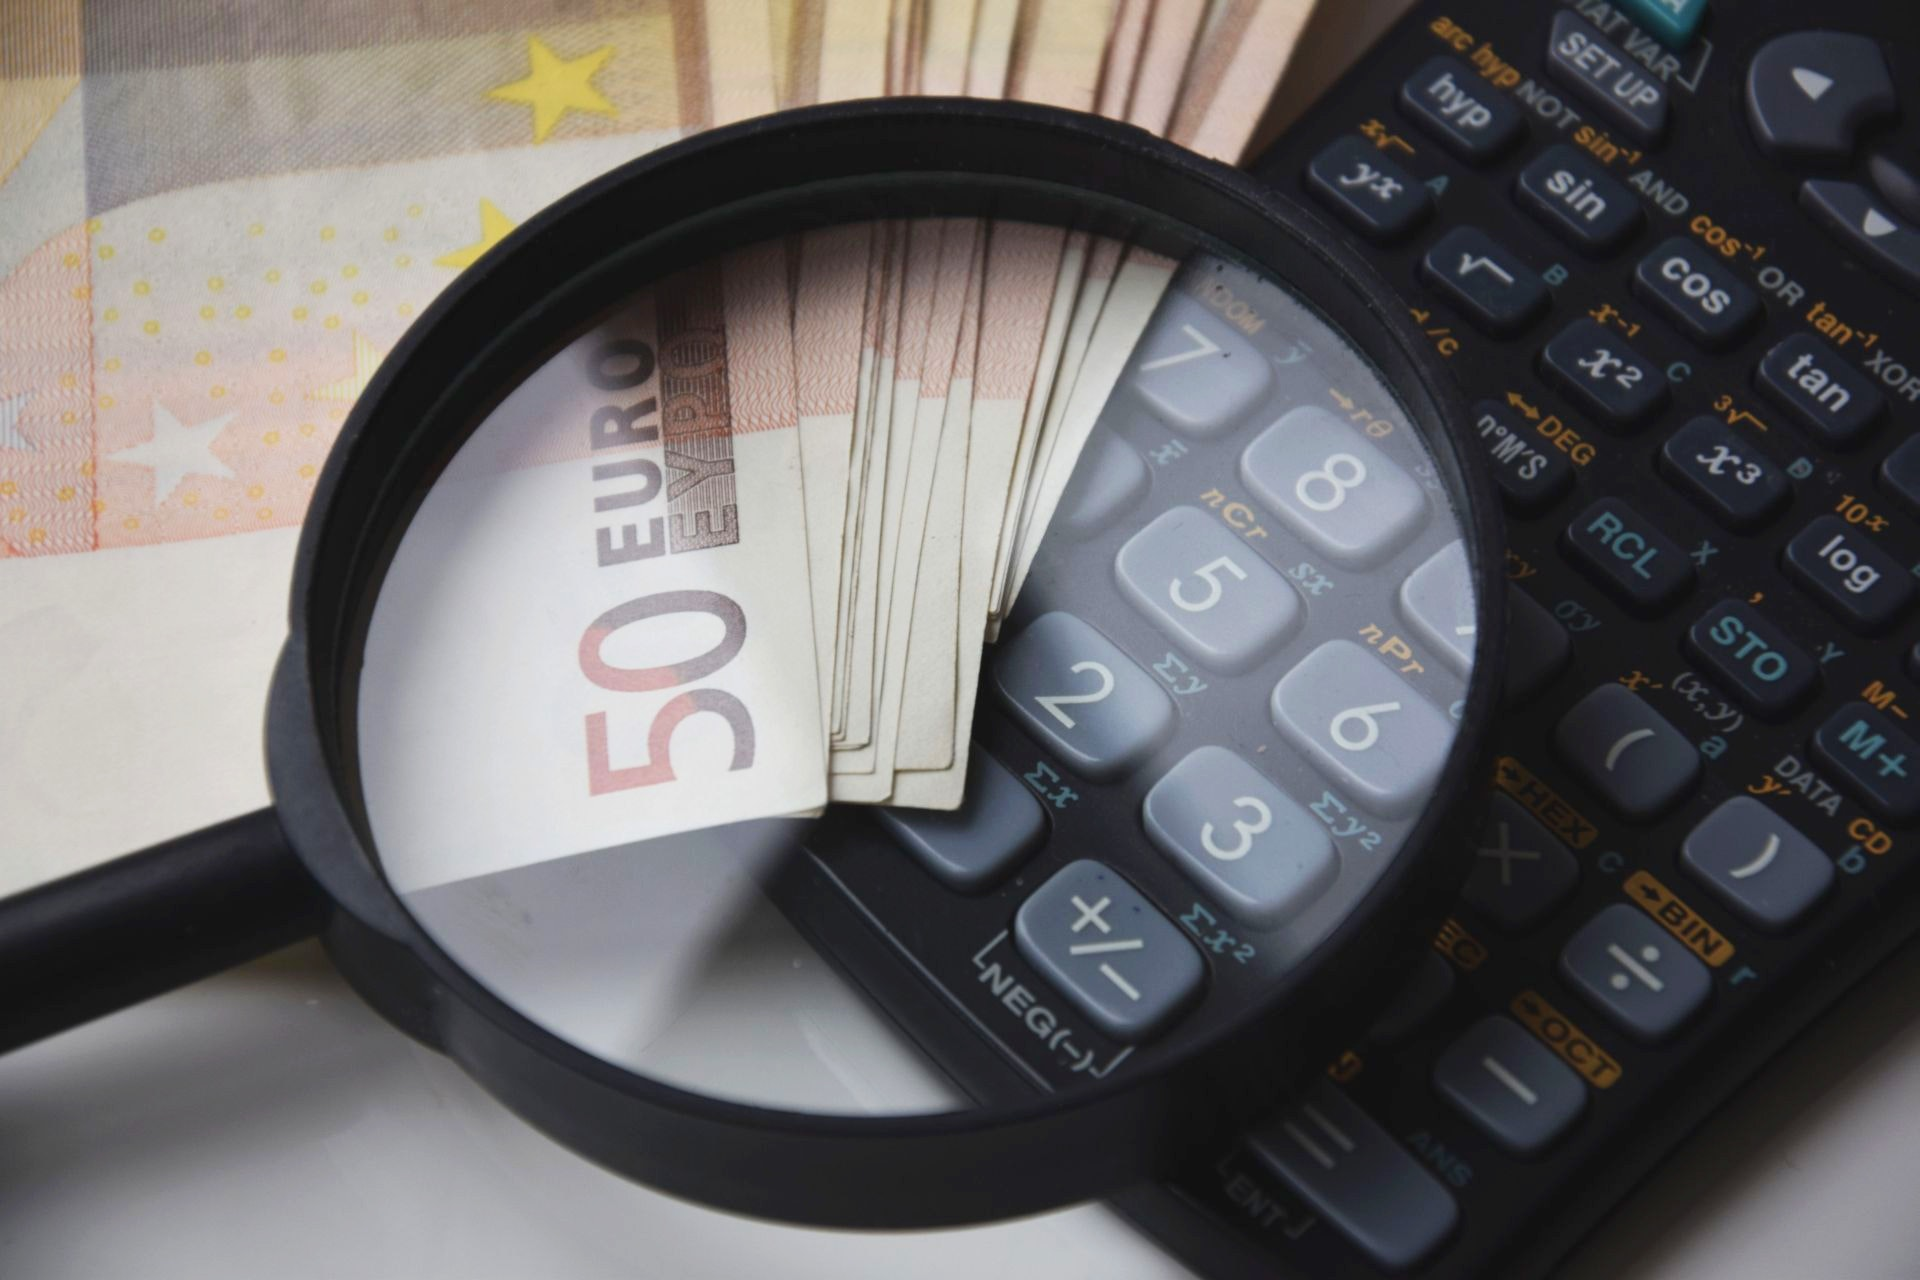 calculate-calculator-close-up-magnifying-glass-221174